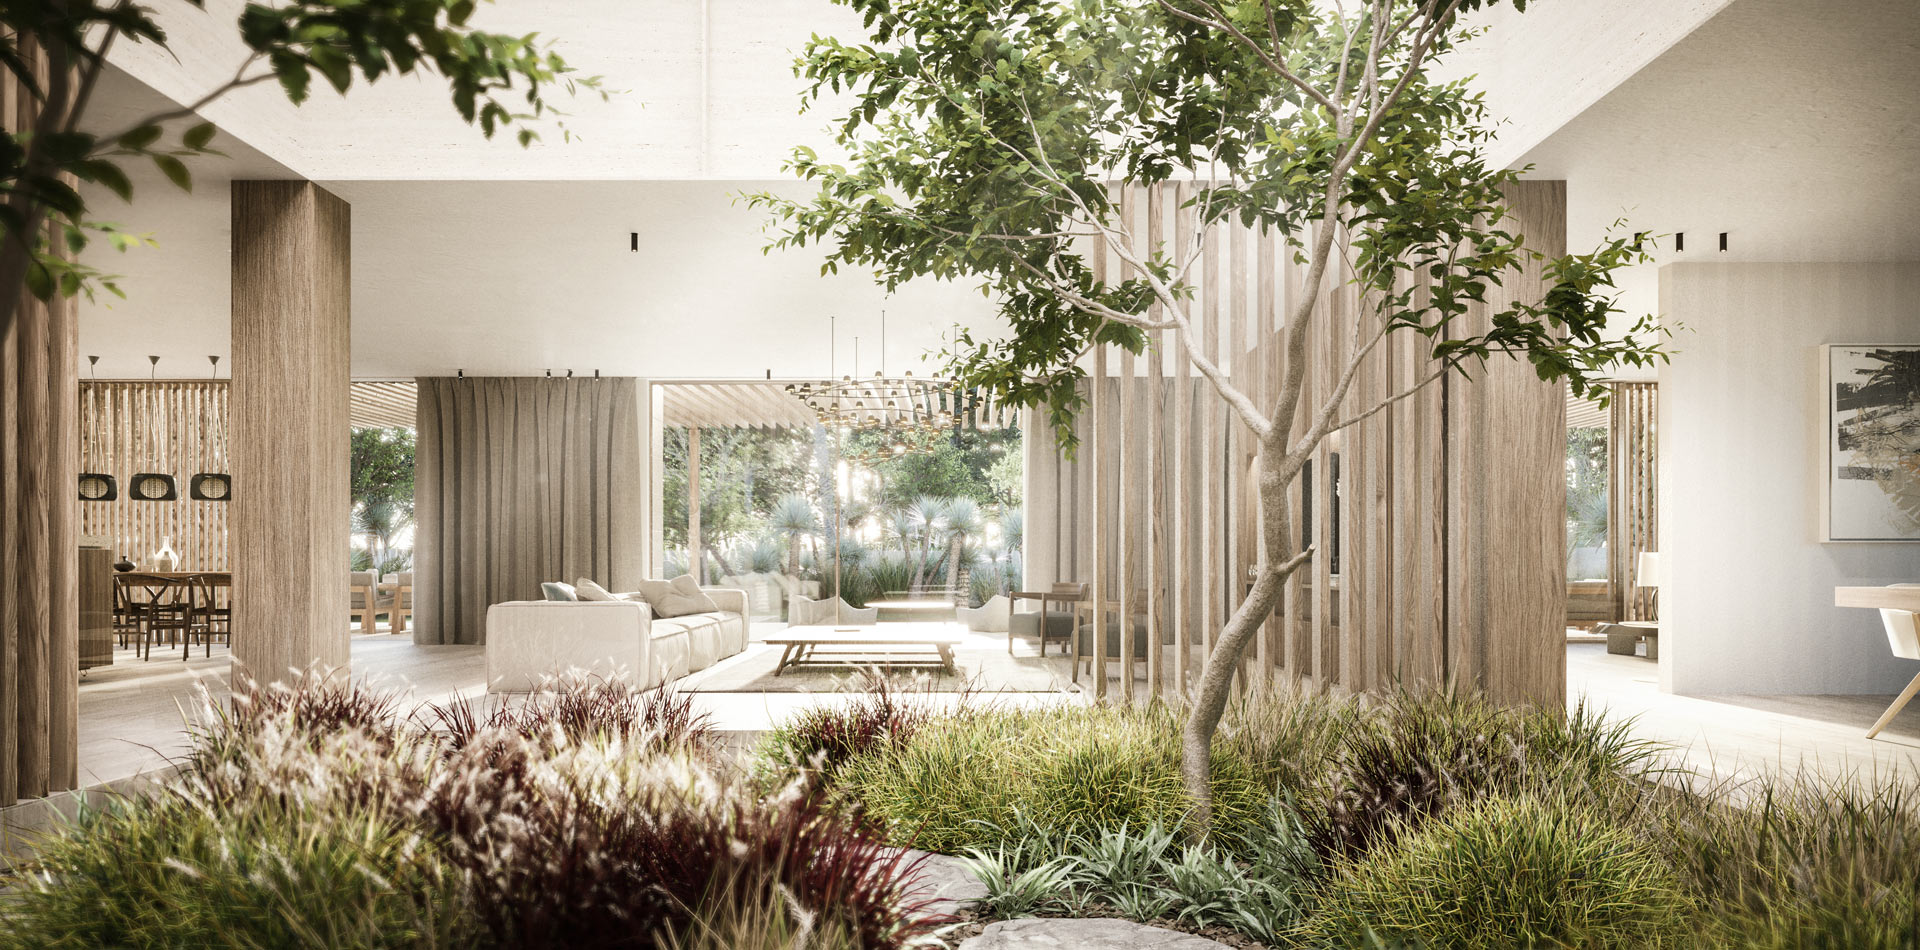 Terri Brown 3D Visualisation Architecture Design #DS Max Vray Photoshop landscaping digital art lighting